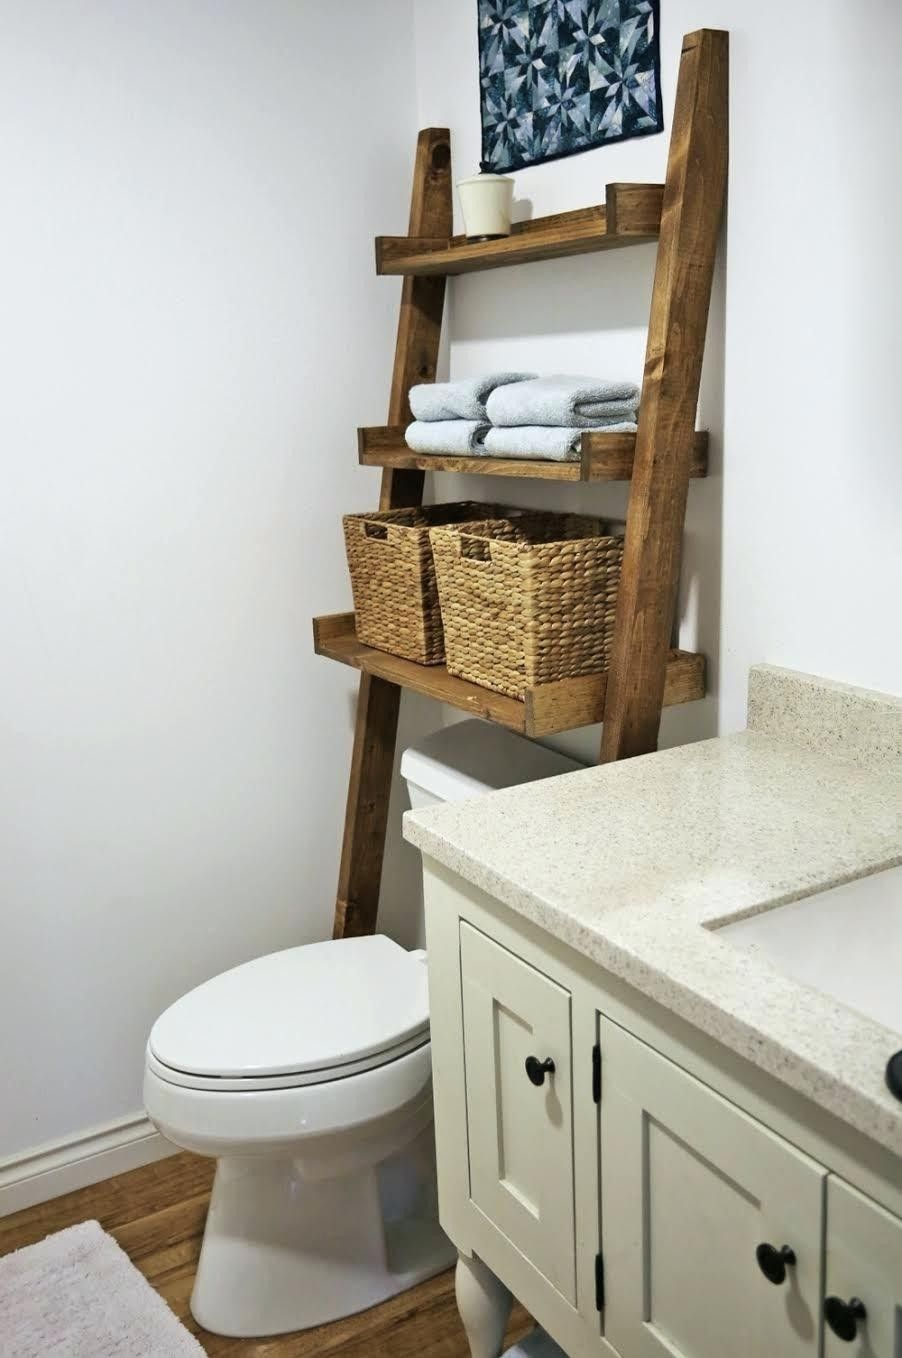 Pin By Kd Poolscapes On Bathroom With Images Toilet Shelves